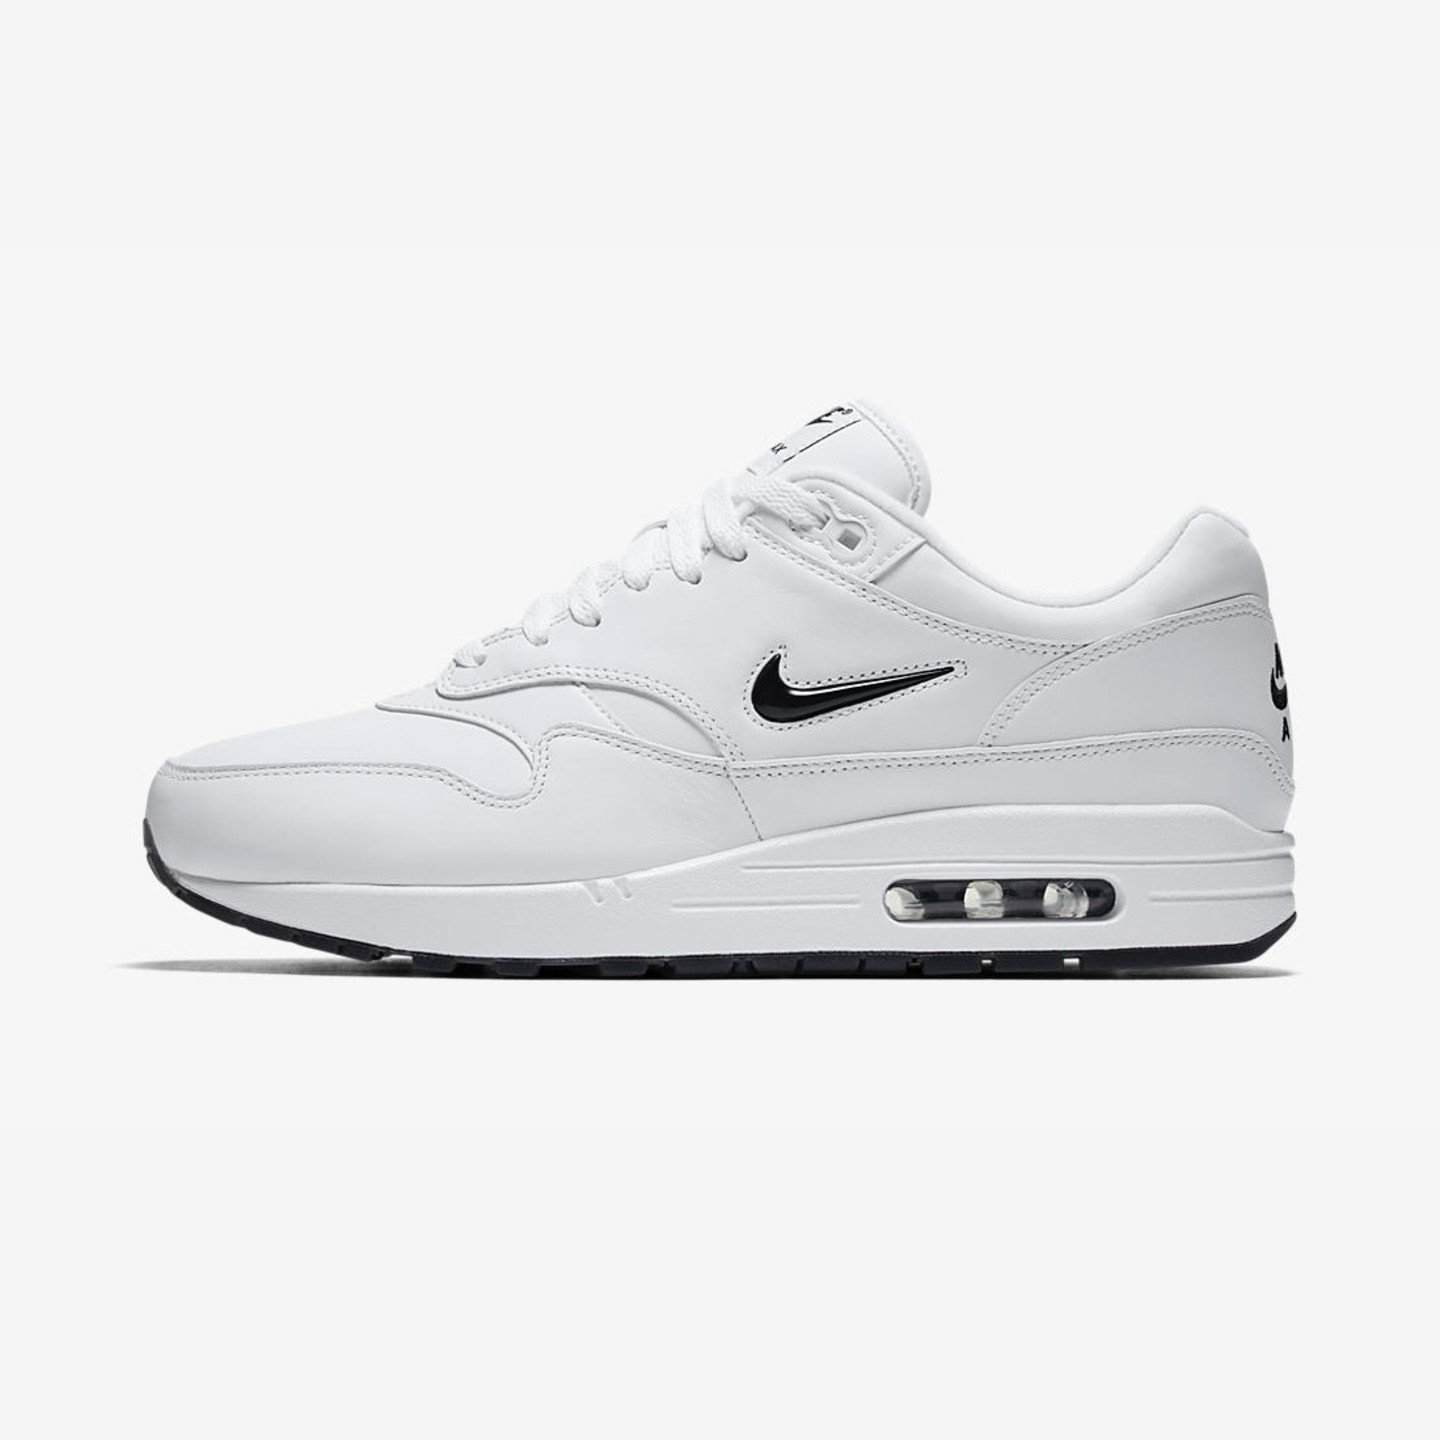 Nike Air Max 1 Jewel QS 'Black Diamond' White / Black 918354-103